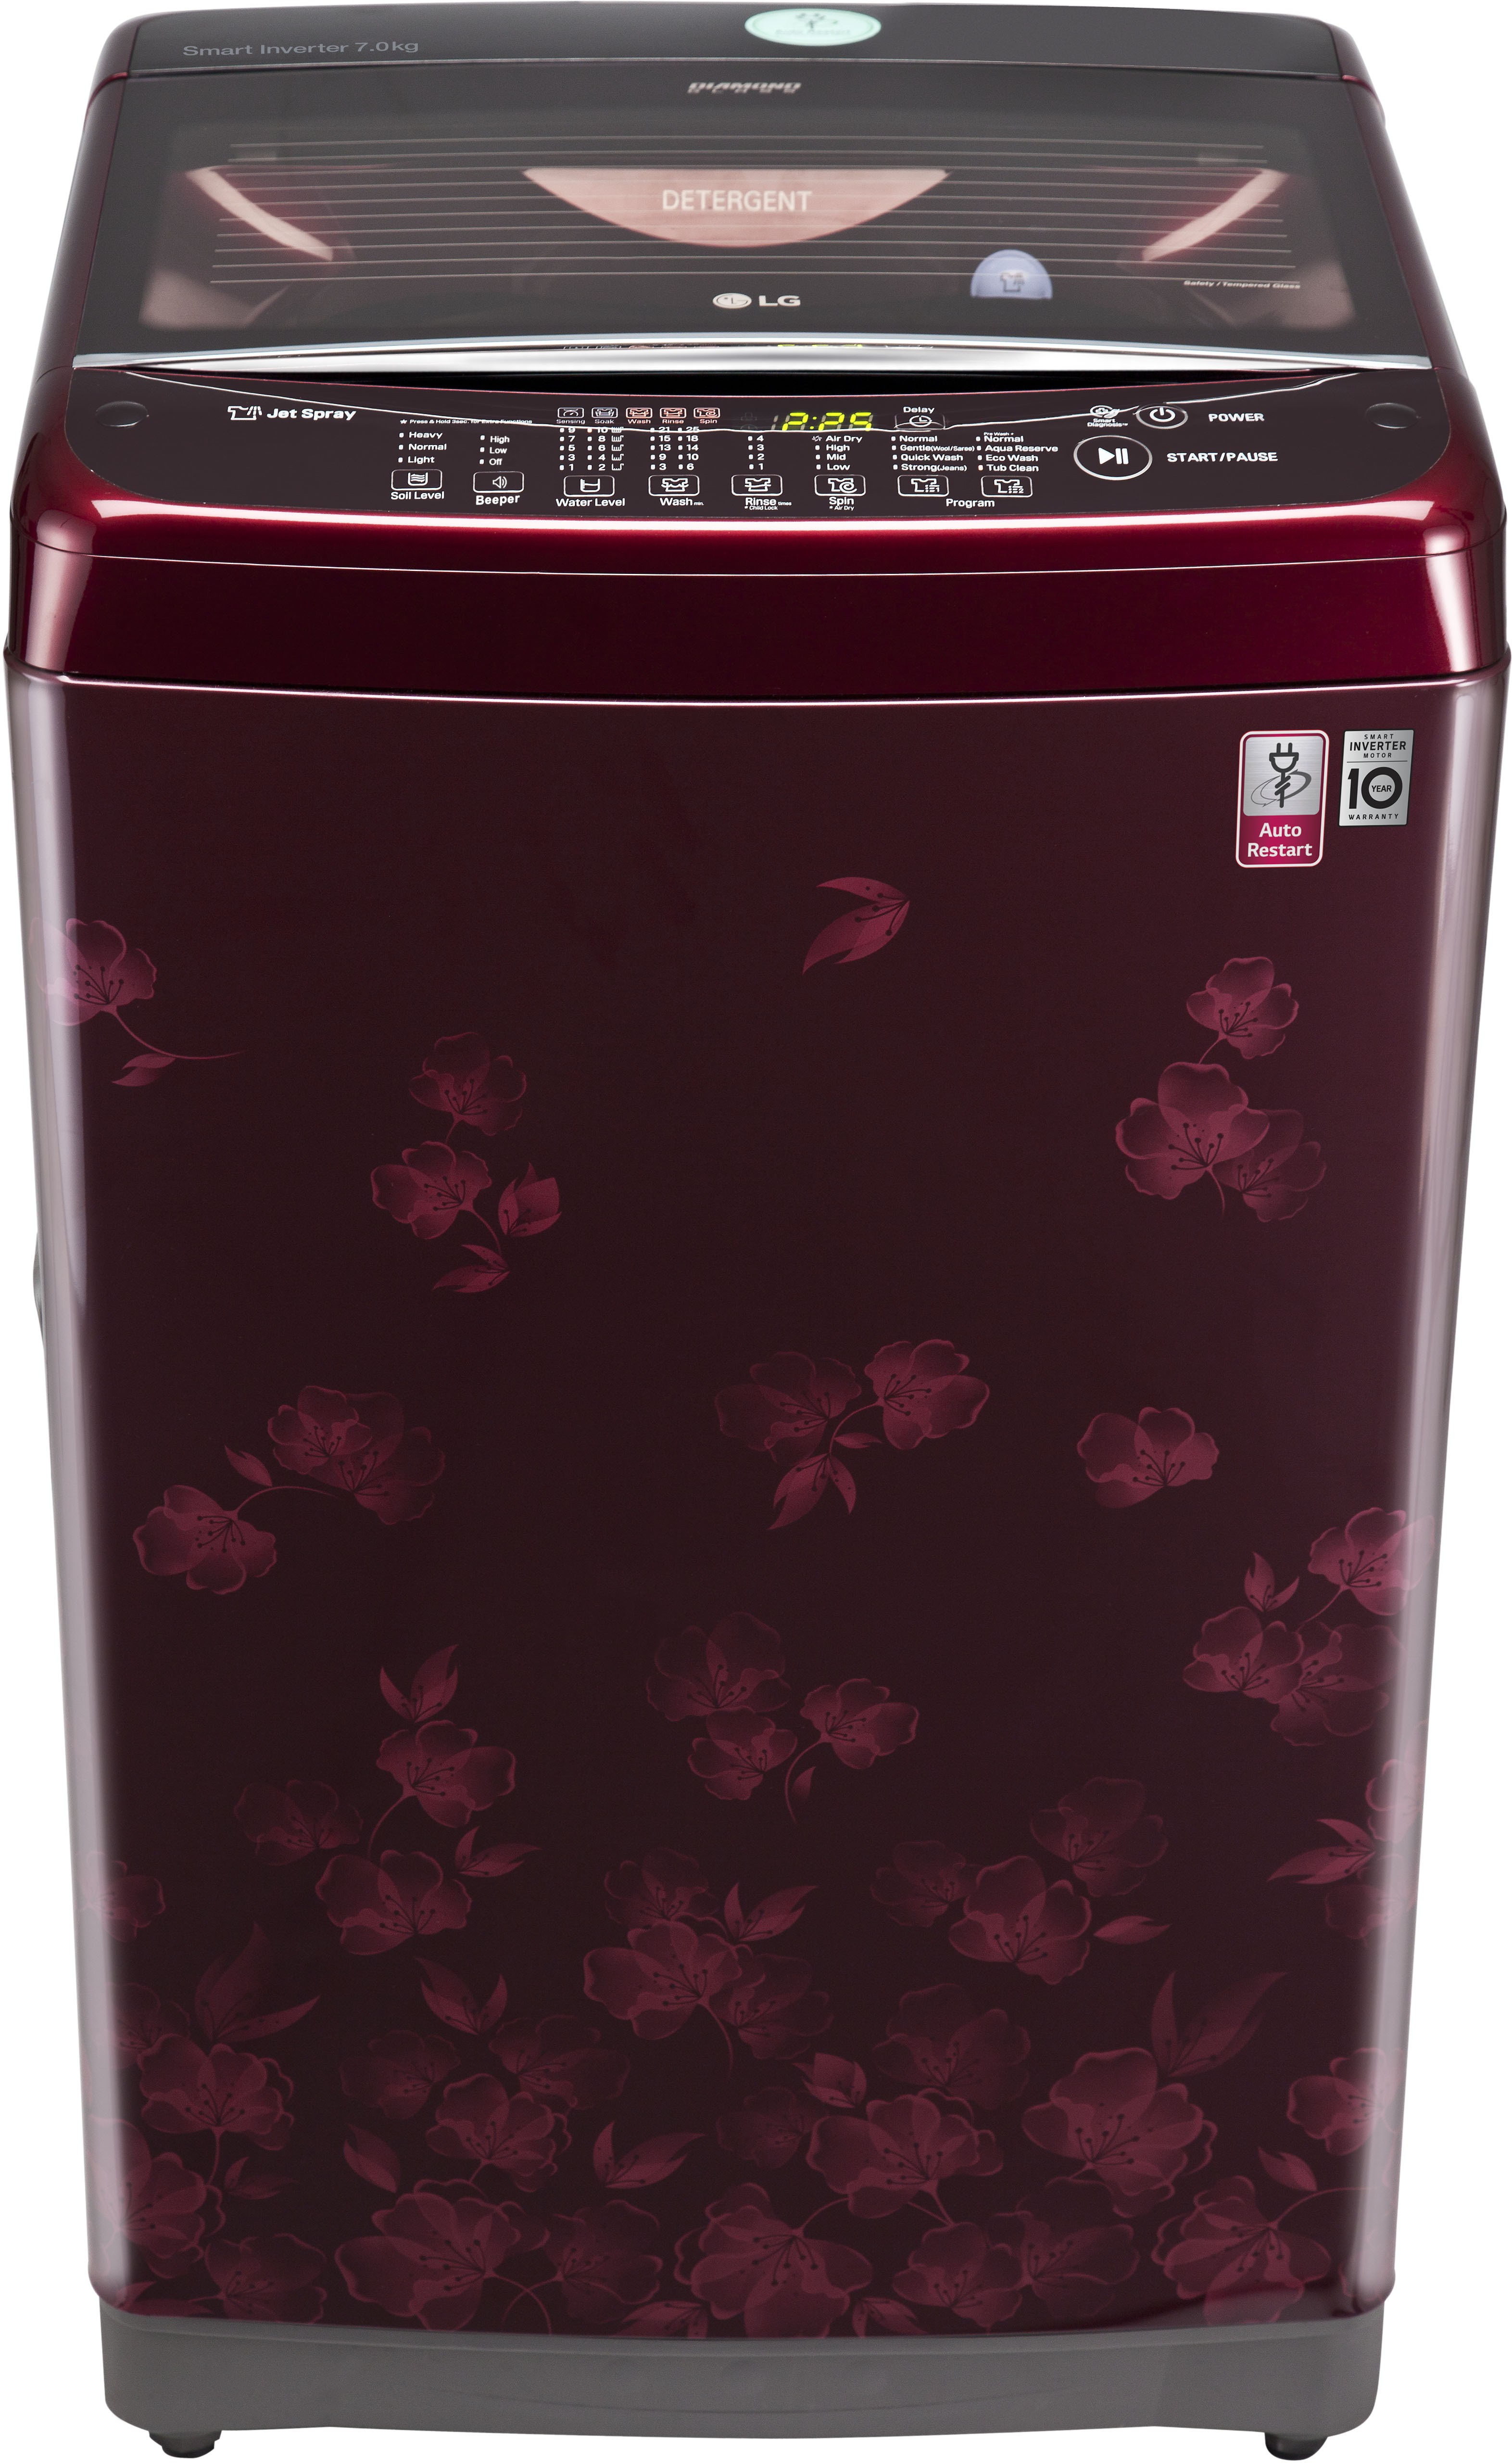 LG 7 kg Fully Automatic Top Load Washing Machine (T8077NEDLX) Image